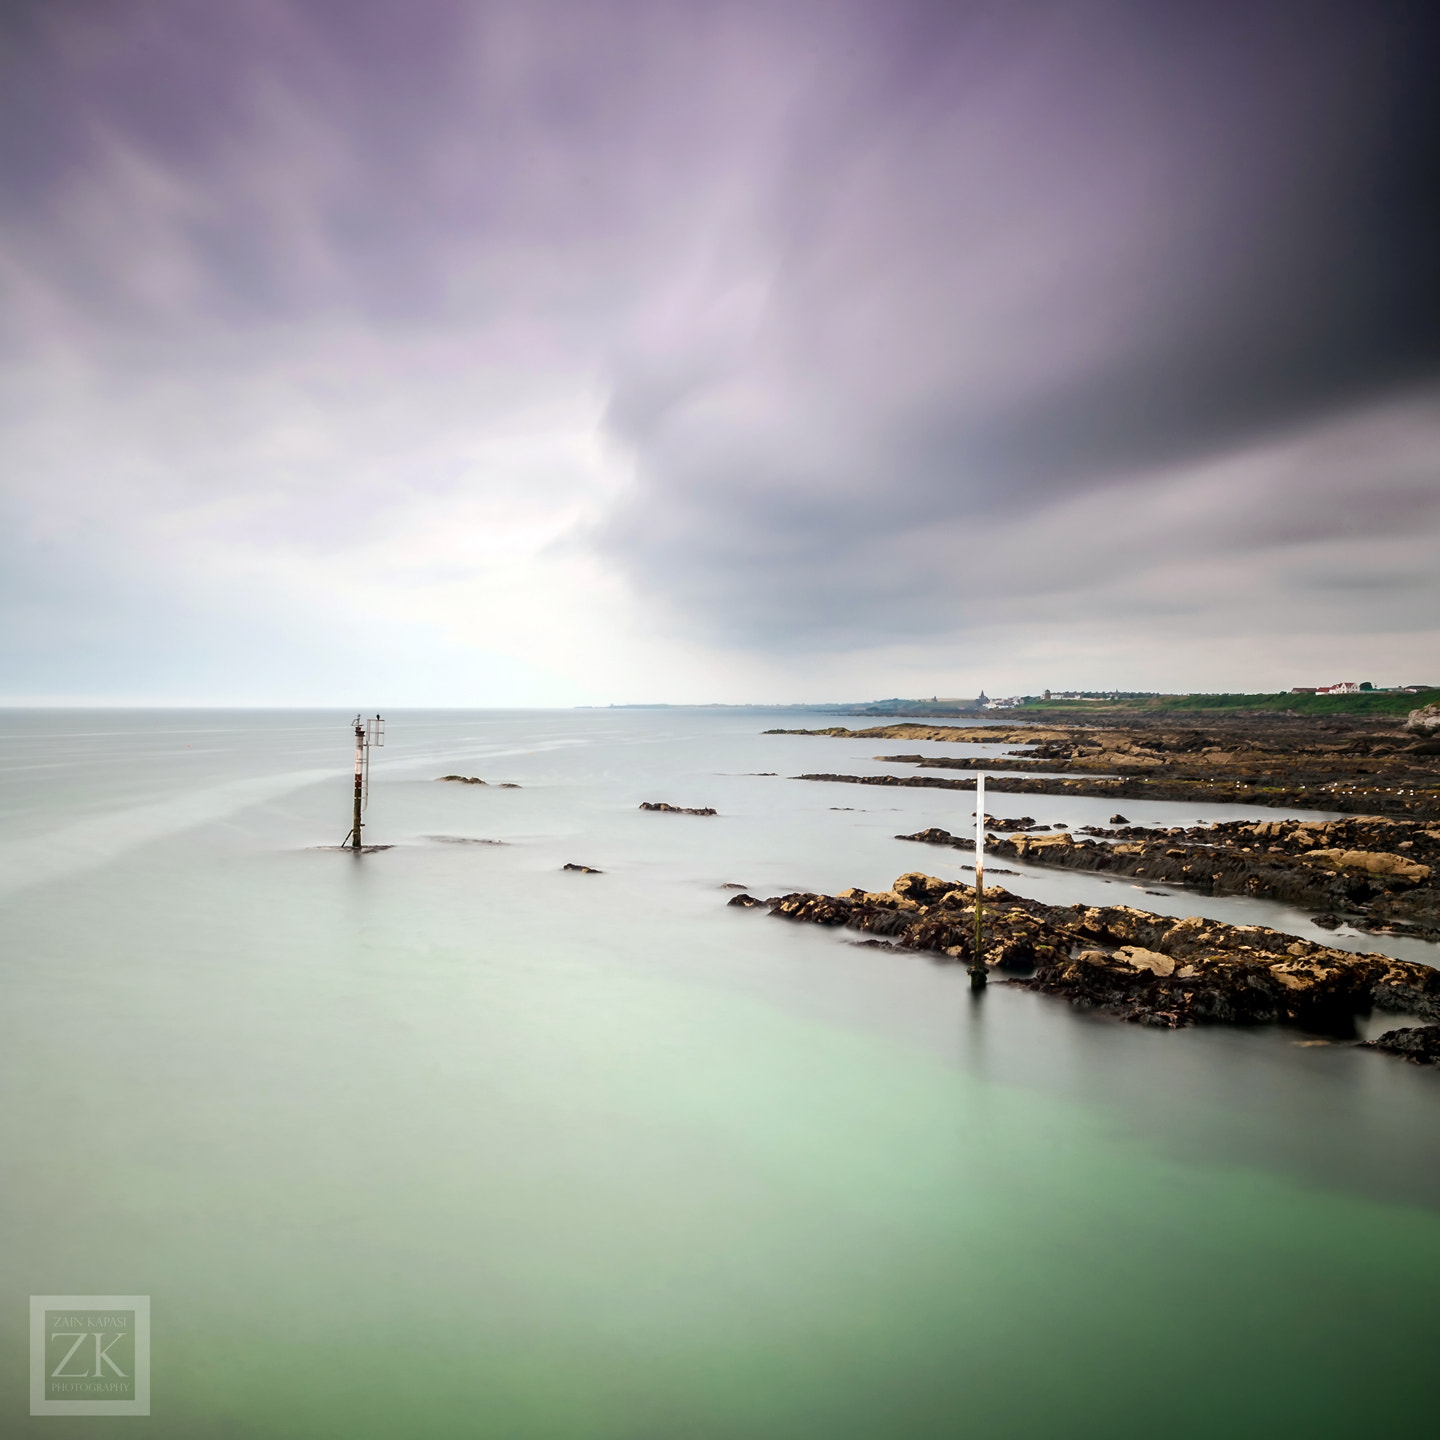 Photograph St Monans from Pittenweem by Zain Kapasi on 500px